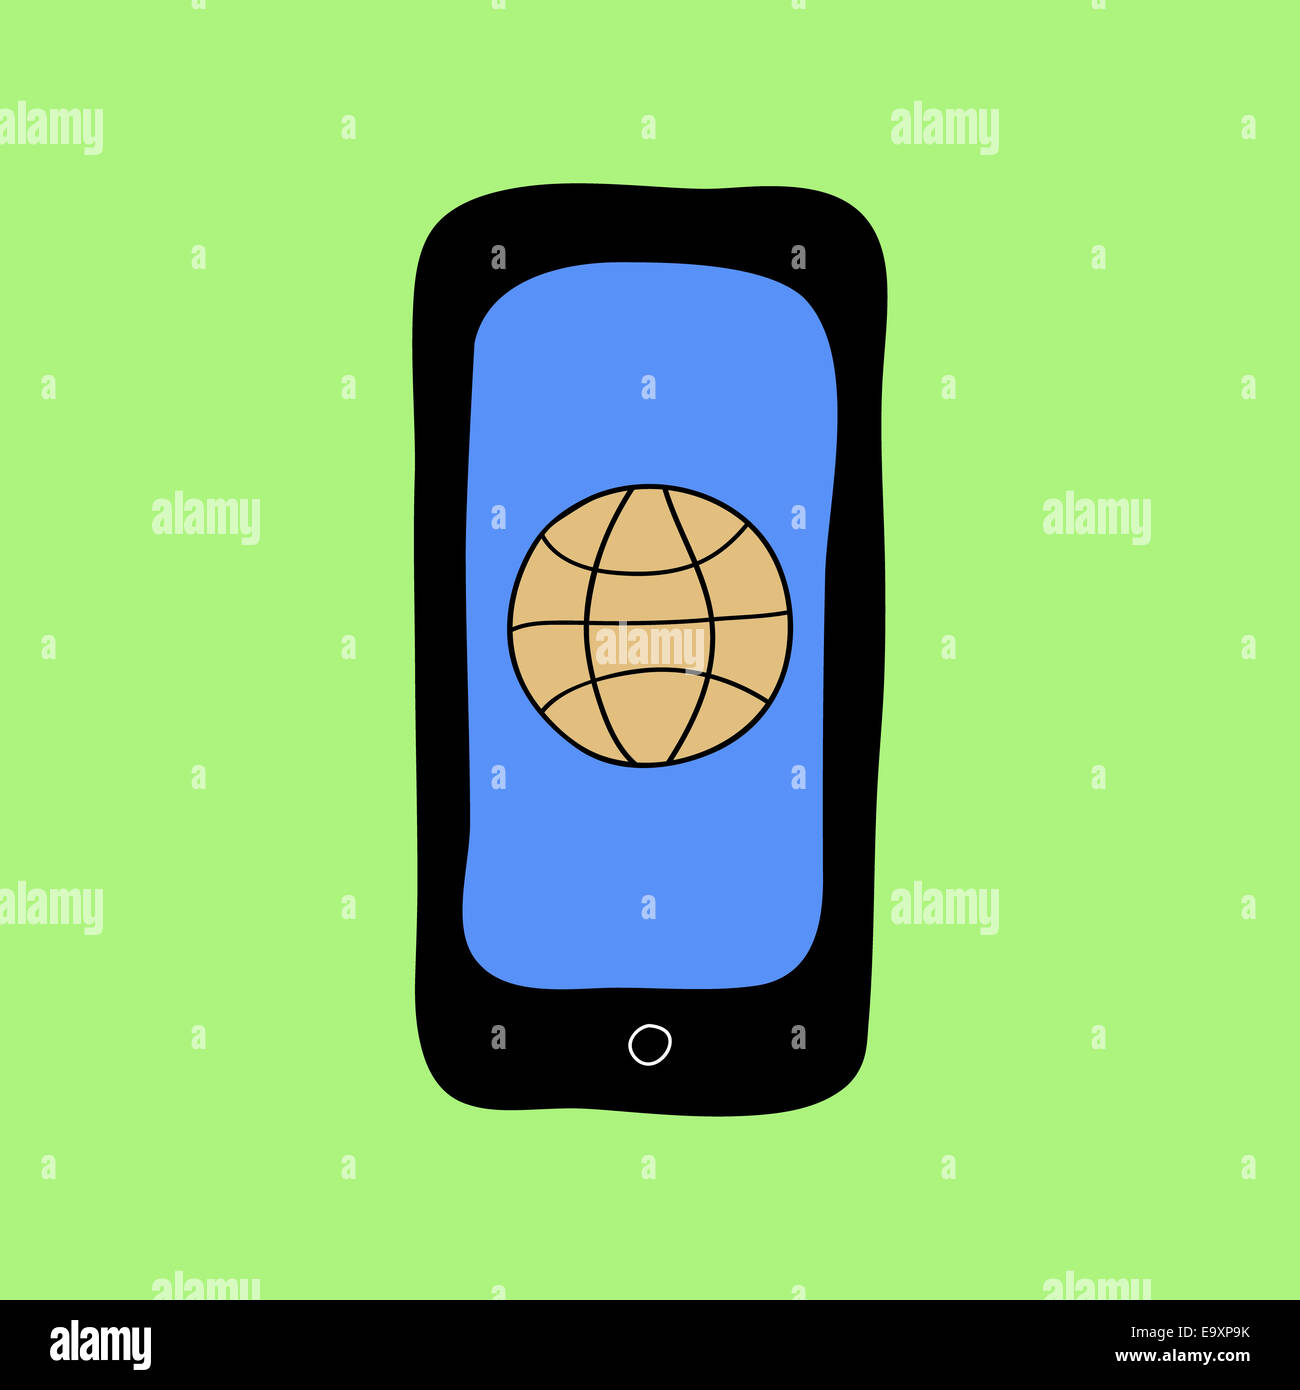 Doodle style phone with web browser - Stock Image